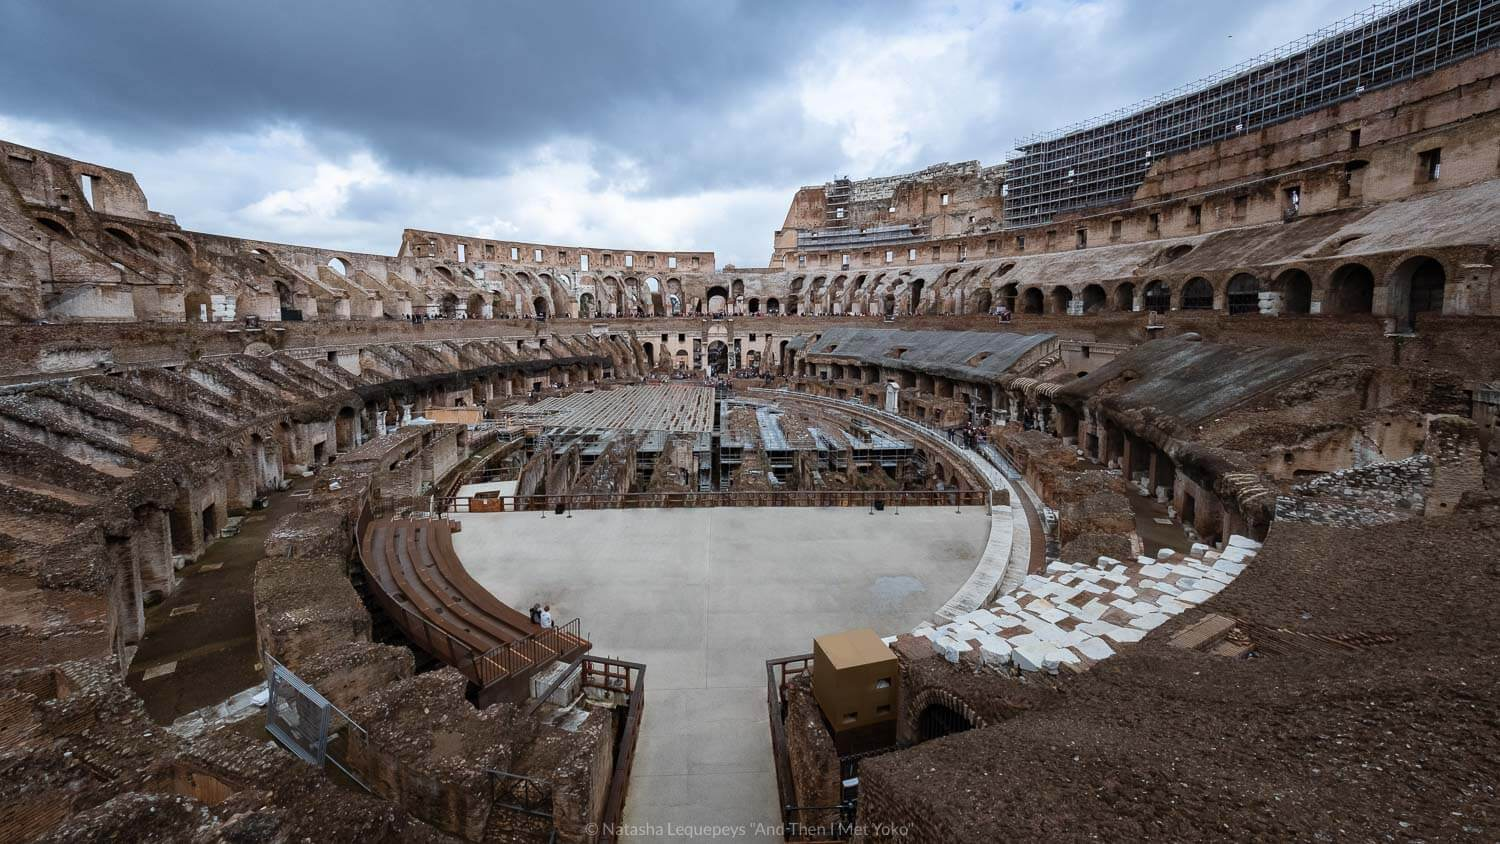 """The inside of the Colosseum in Rome, Italy. Travel photography and guide by © Natasha Lequepeys for """"And Then I Met Yoko"""". #rome #italy #travelblog #travelphotography"""